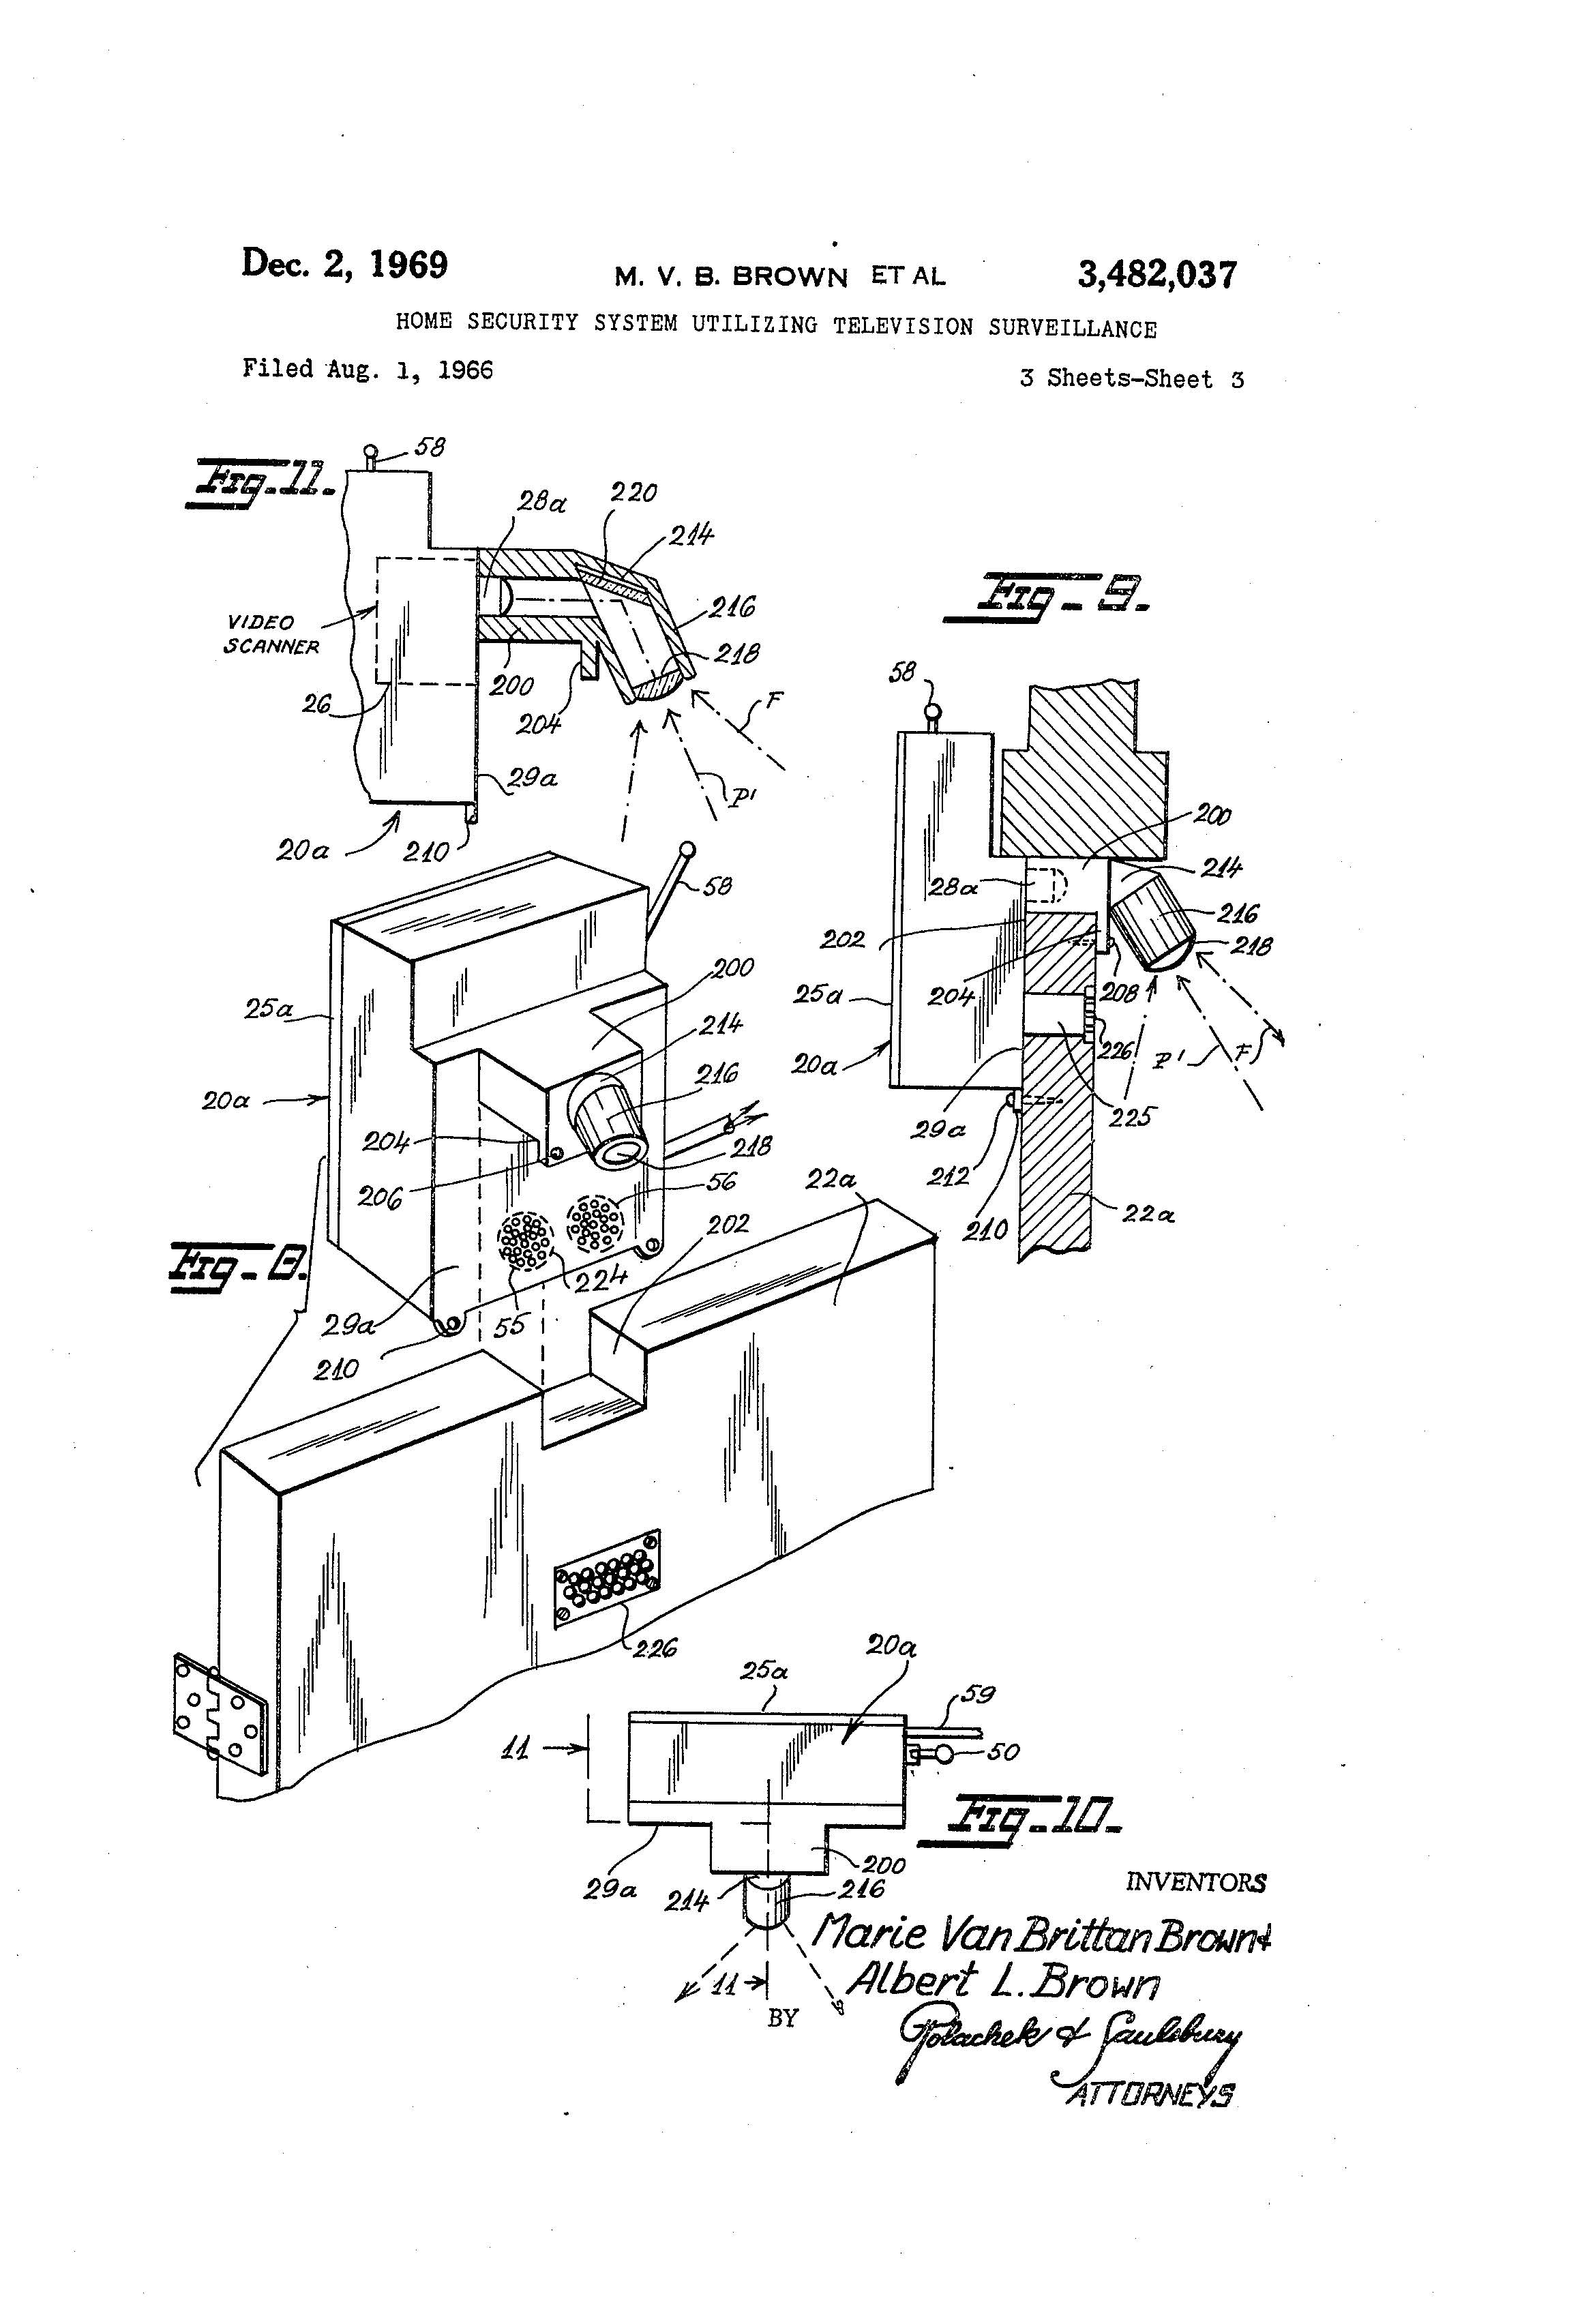 Patent of the Day: Home Security System Utilizing